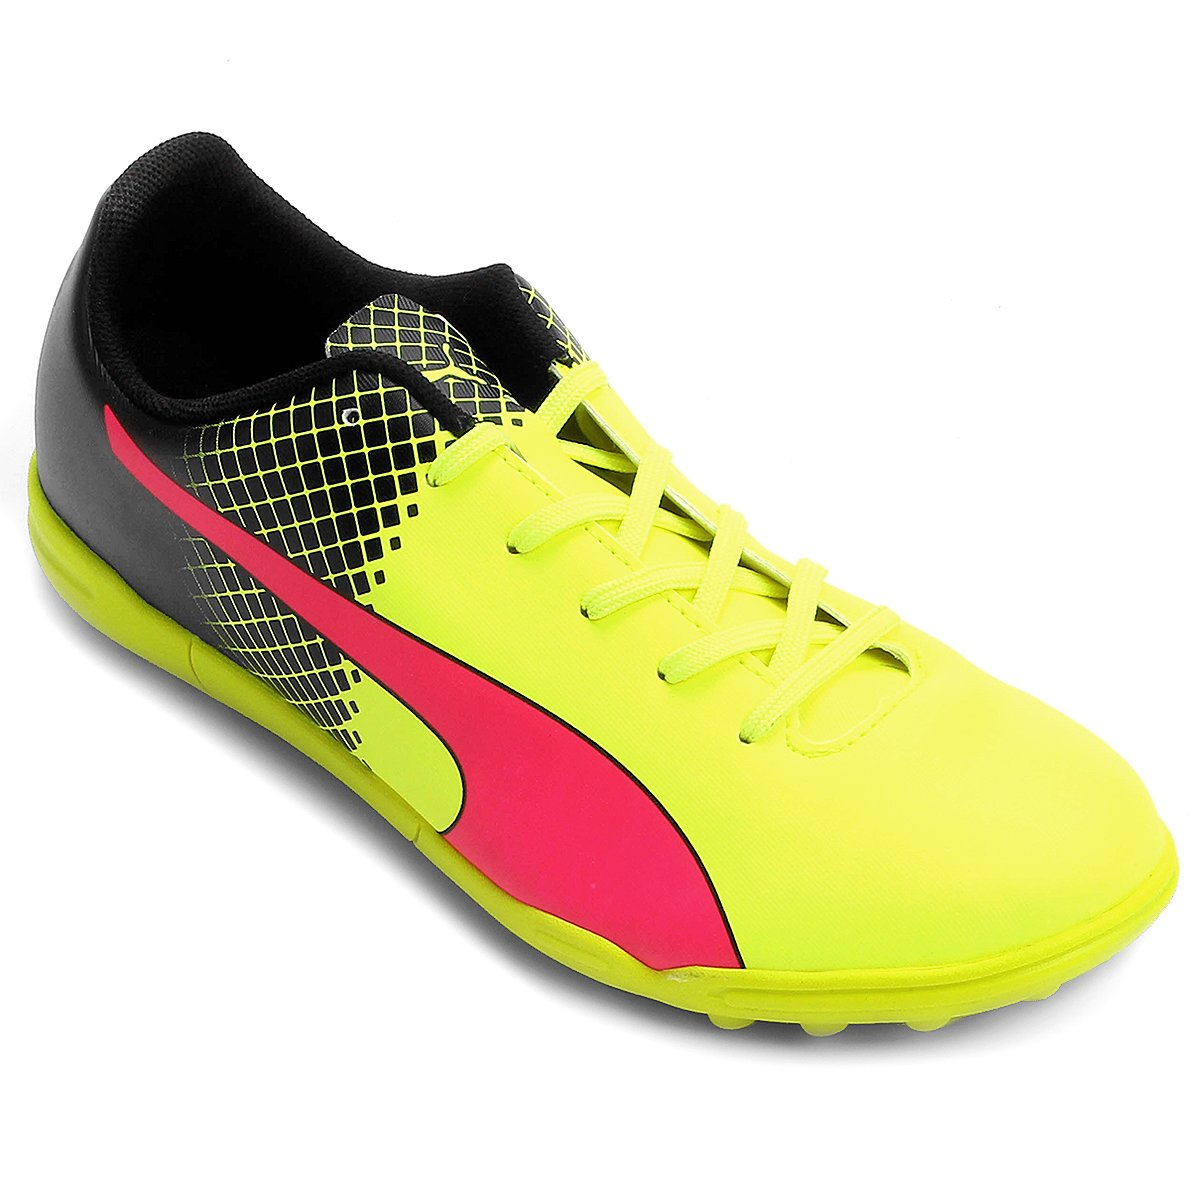 dd4a74e946 ... arrives Chuteira Society Puma Evospeed 5.5 Tricks TT Masculina .